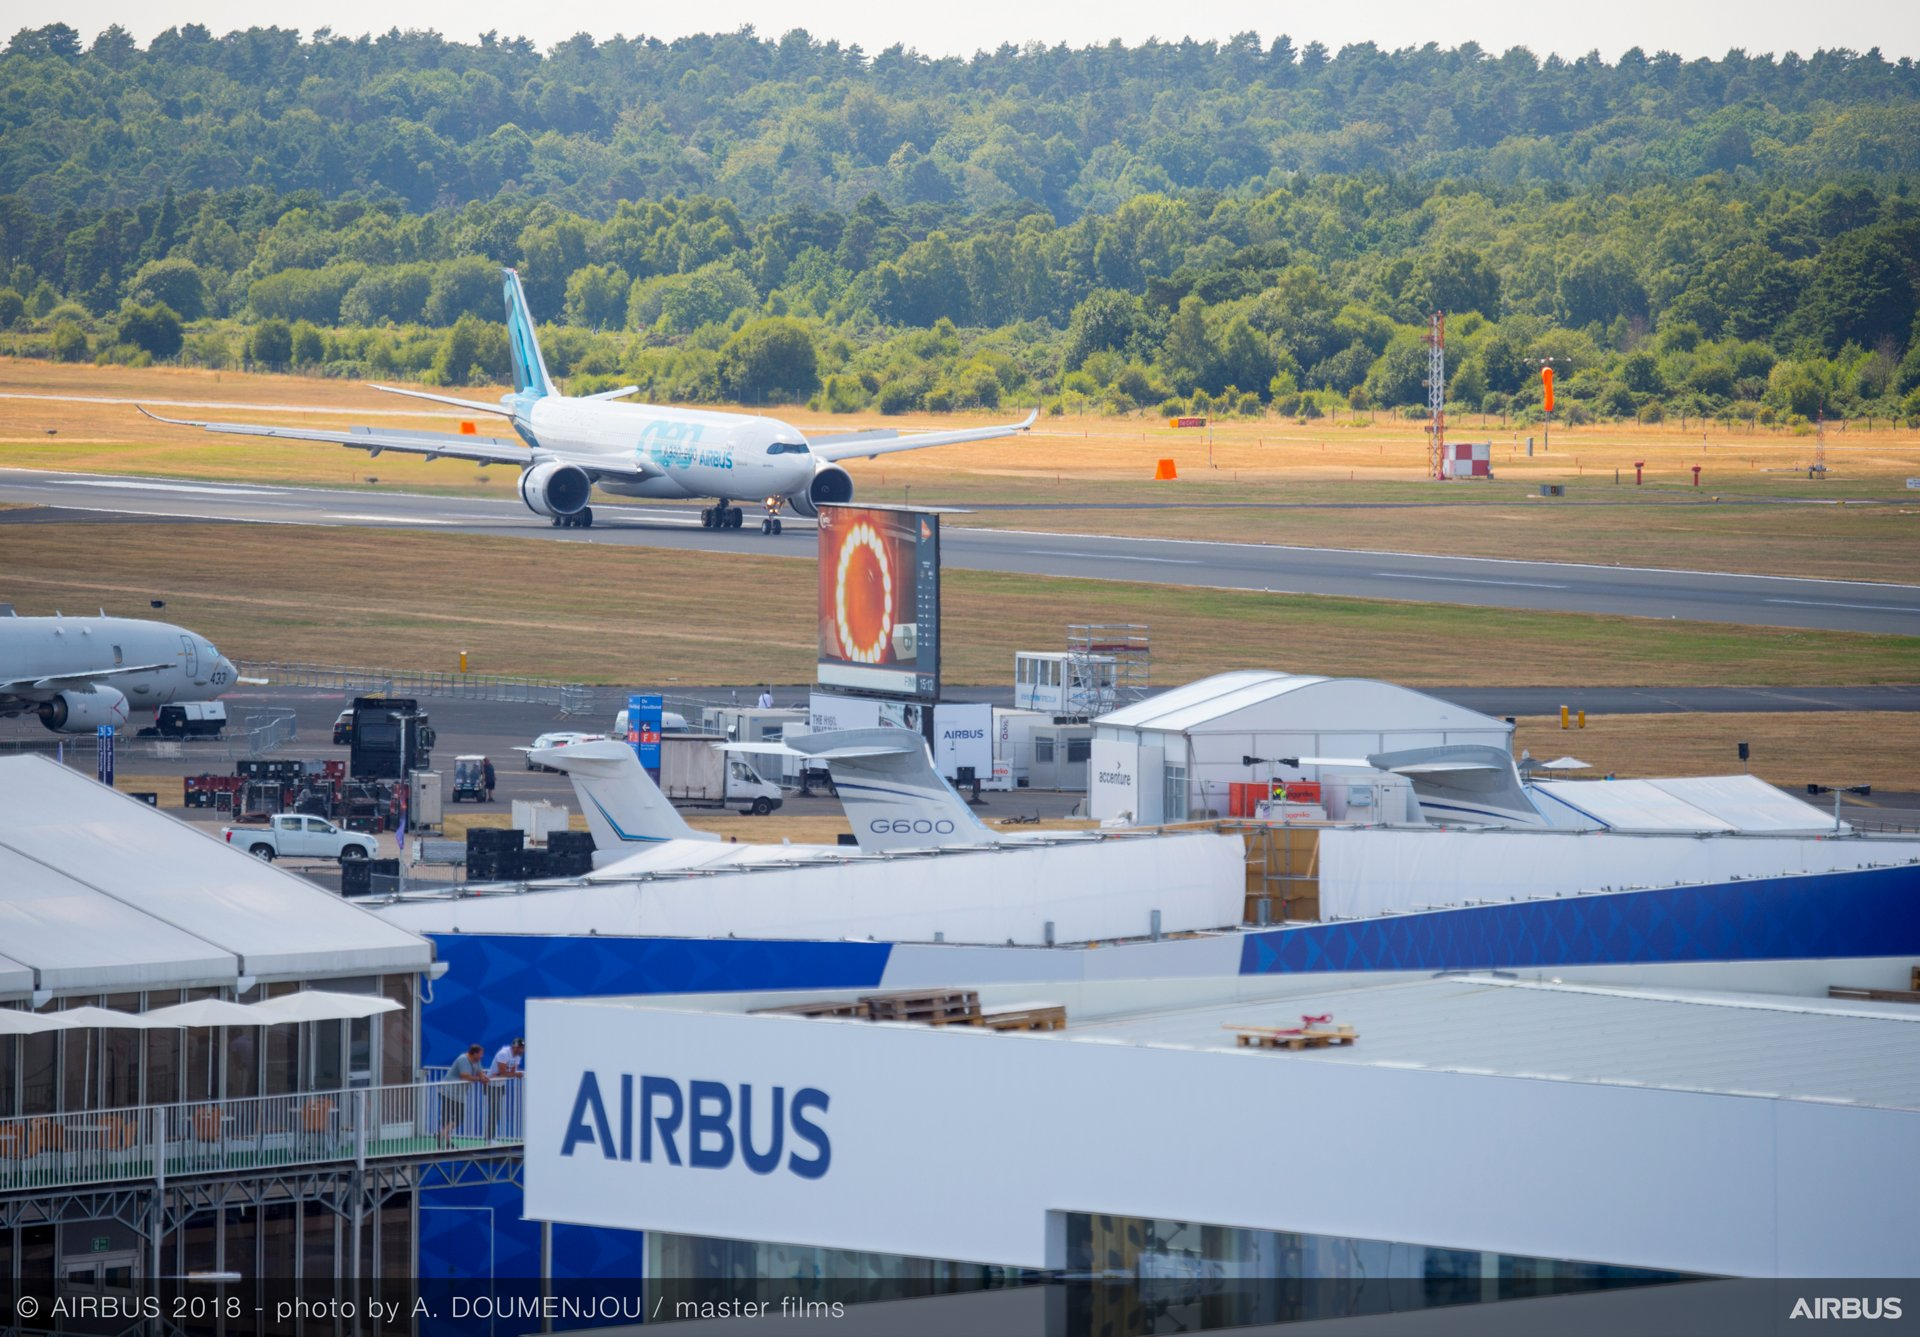 Airbus flies high during the 2018 Farnborough Airshow's opening day